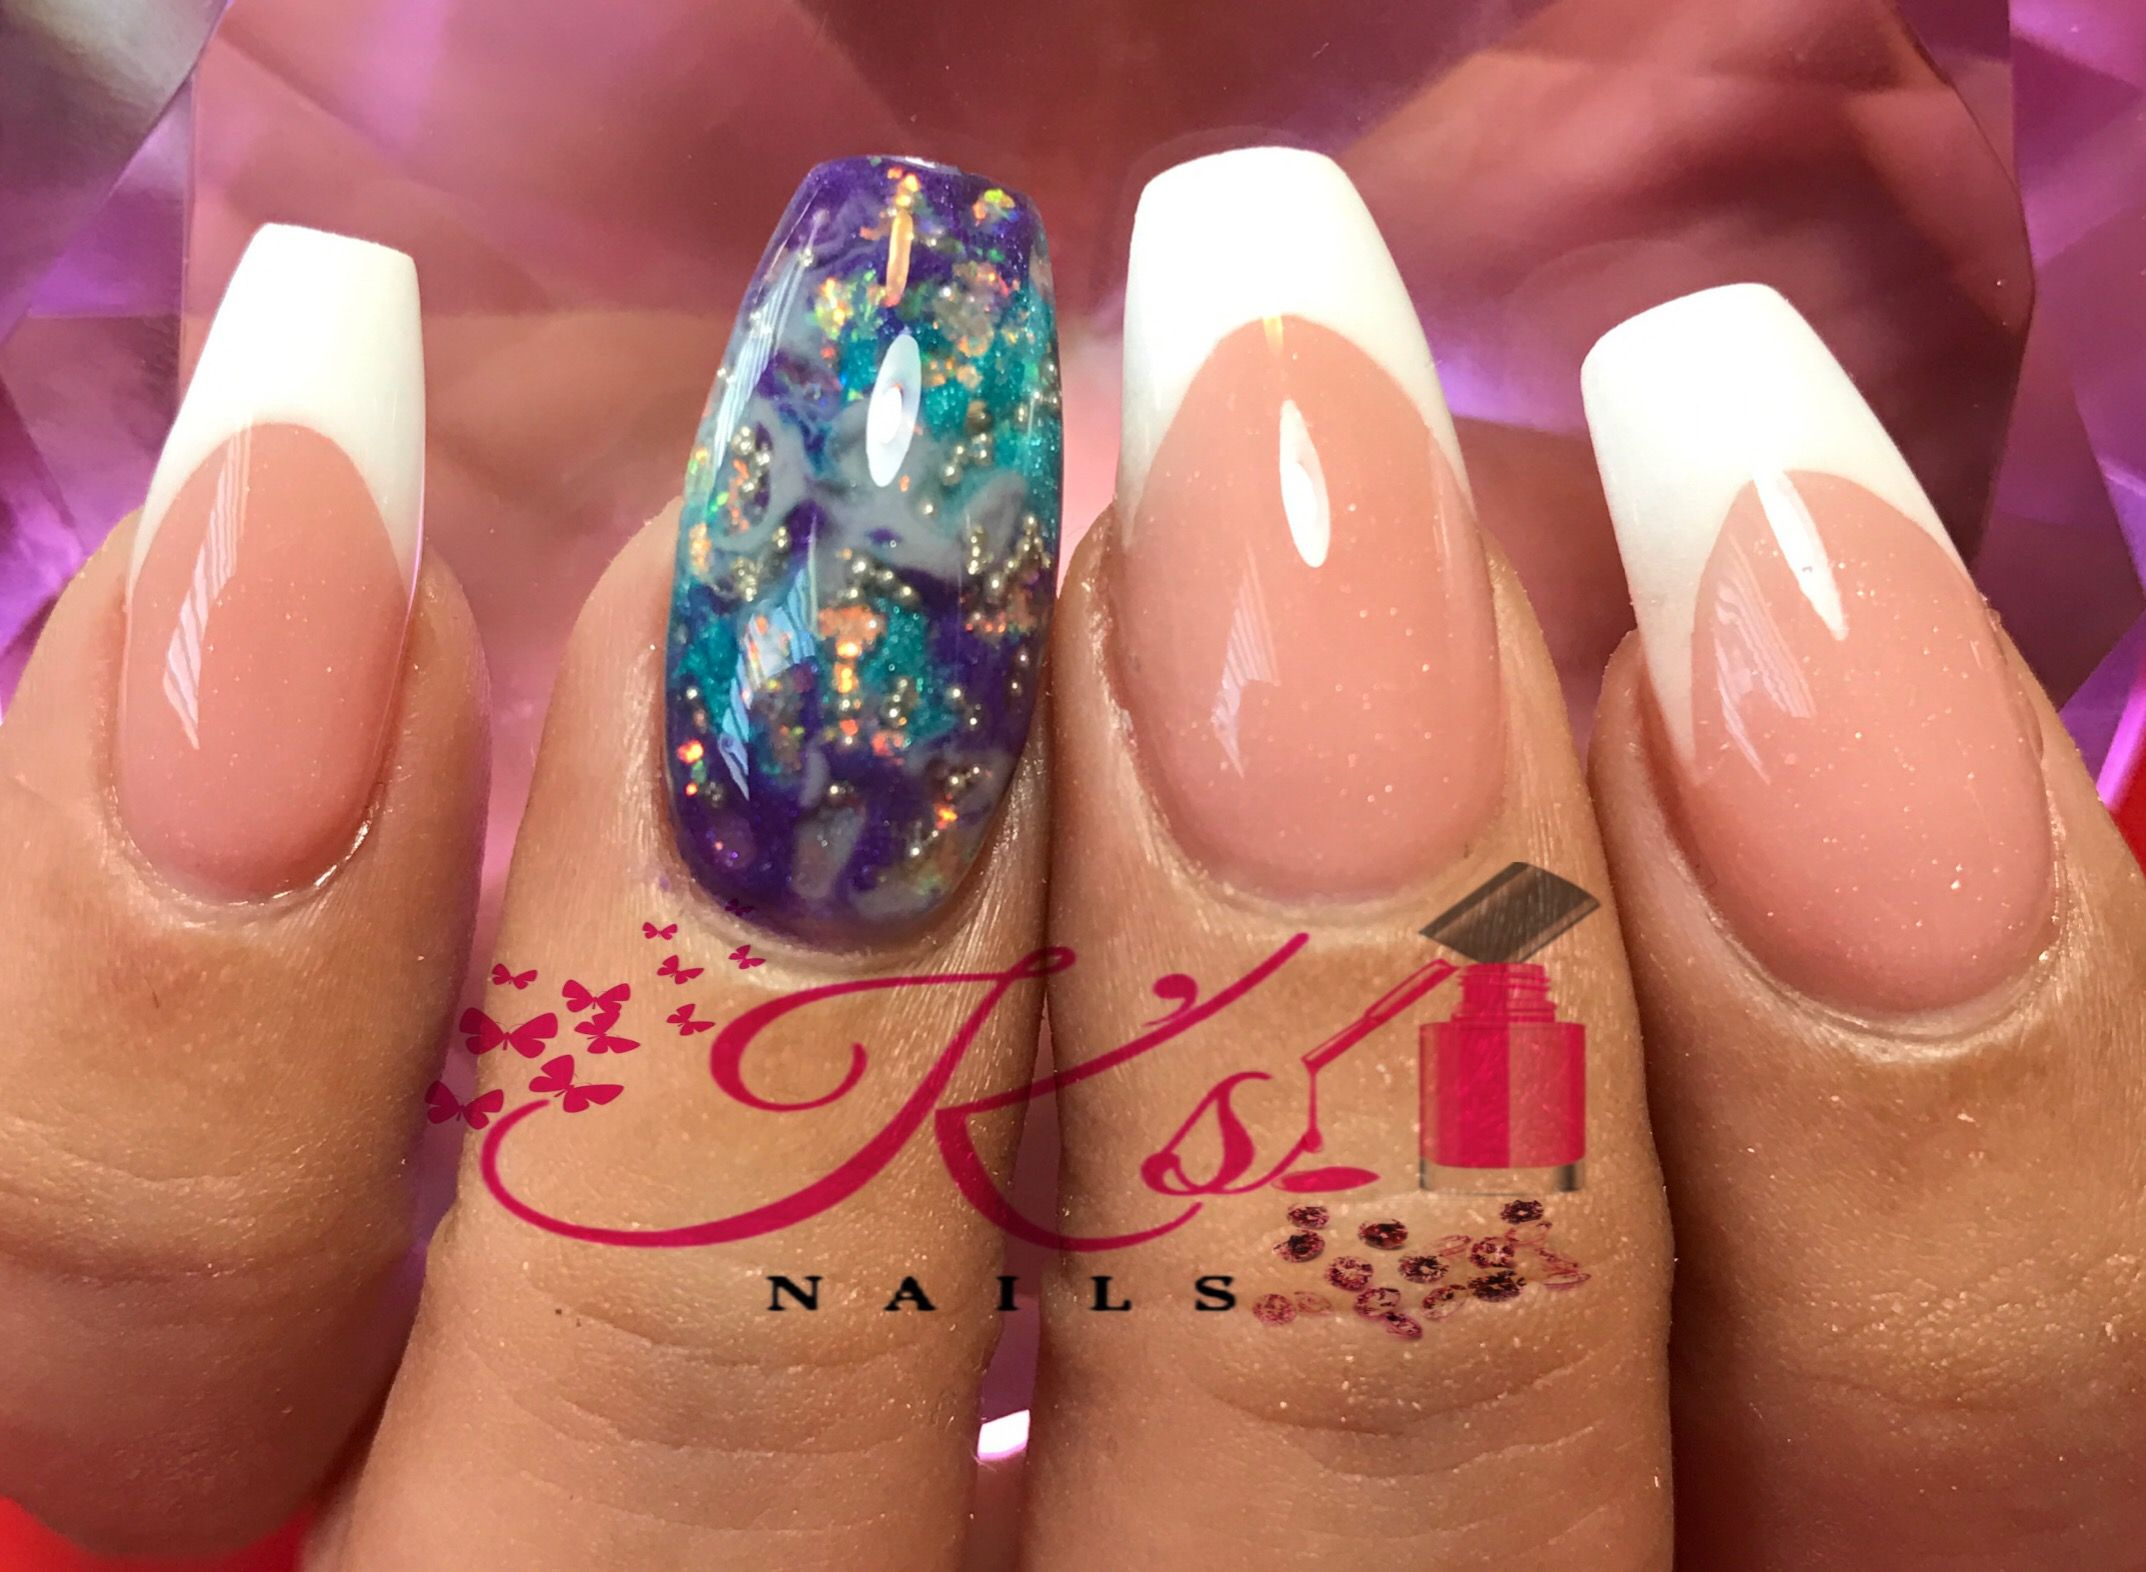 Pin by Kelly Lopez on Nails by Kelly   Nail art, Nails, Beauty